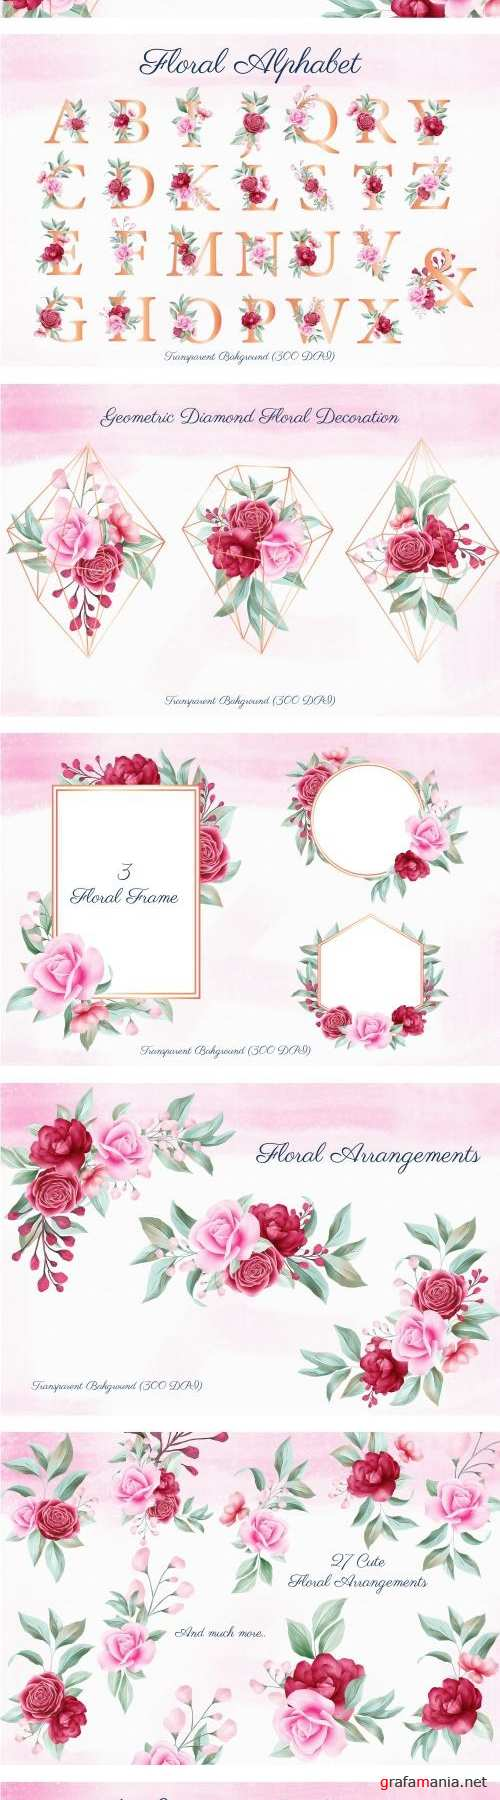 Romantic Watercolor Flowers Collection - 363012